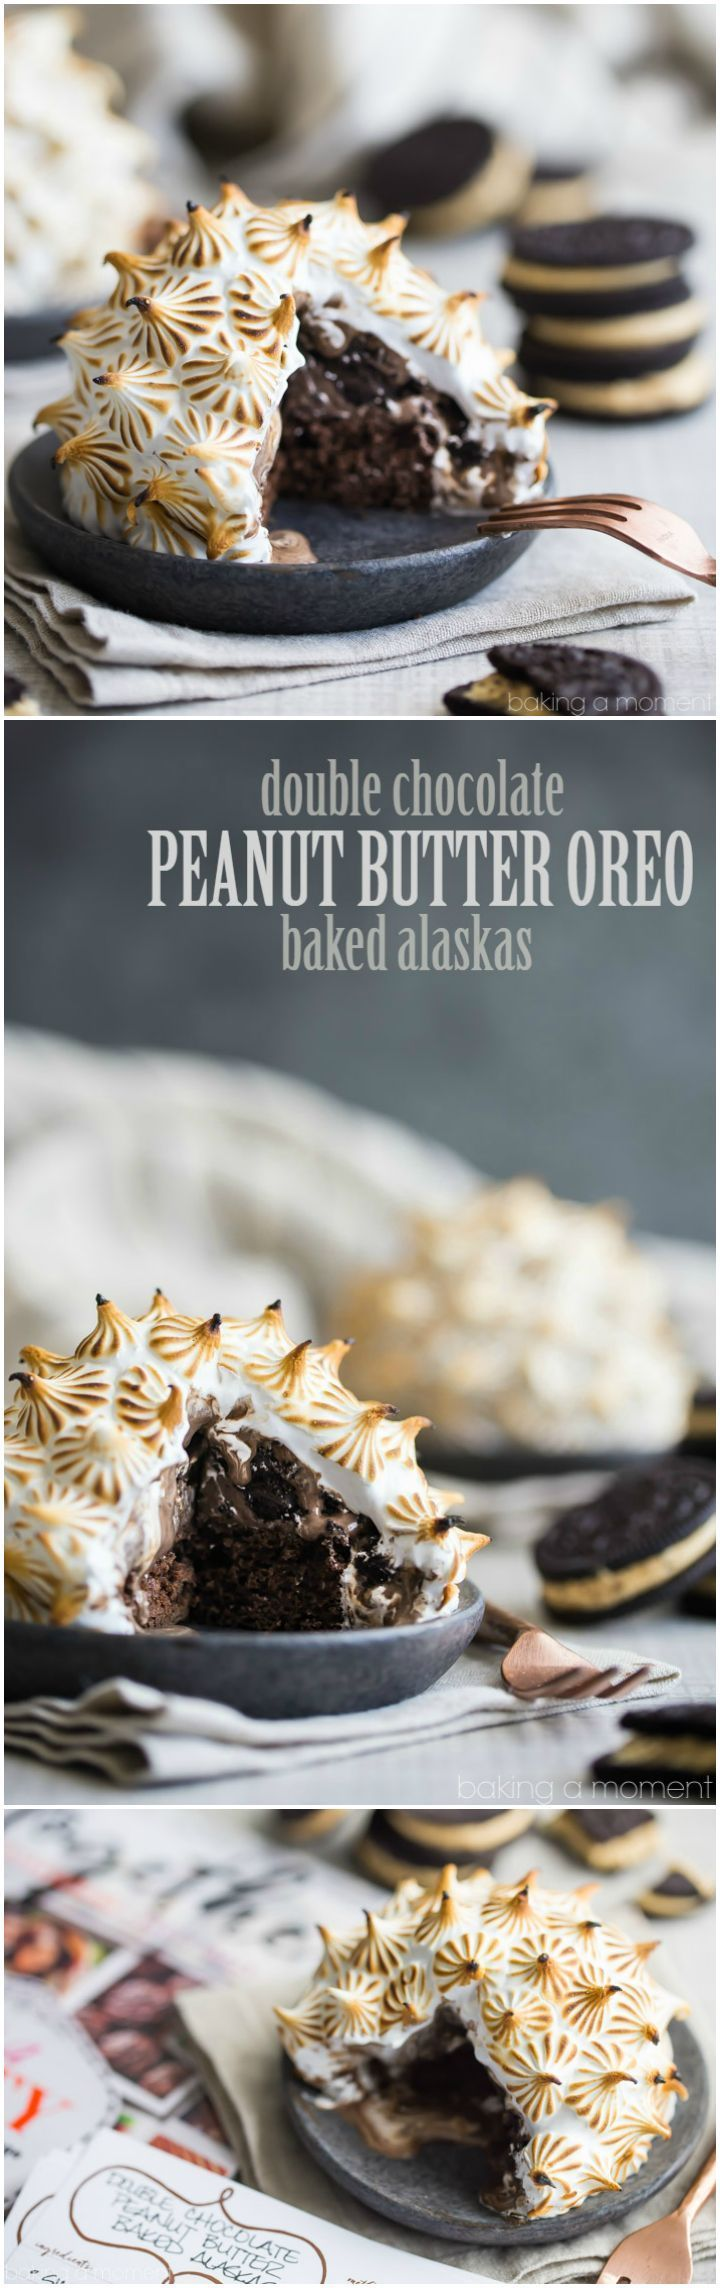 Double Chocolate Peanut Butter Oreo Baked Alaskas- WHOA! So many incredible flavors and textures going on here. Perfect for when you really want to impress. #BHGParty